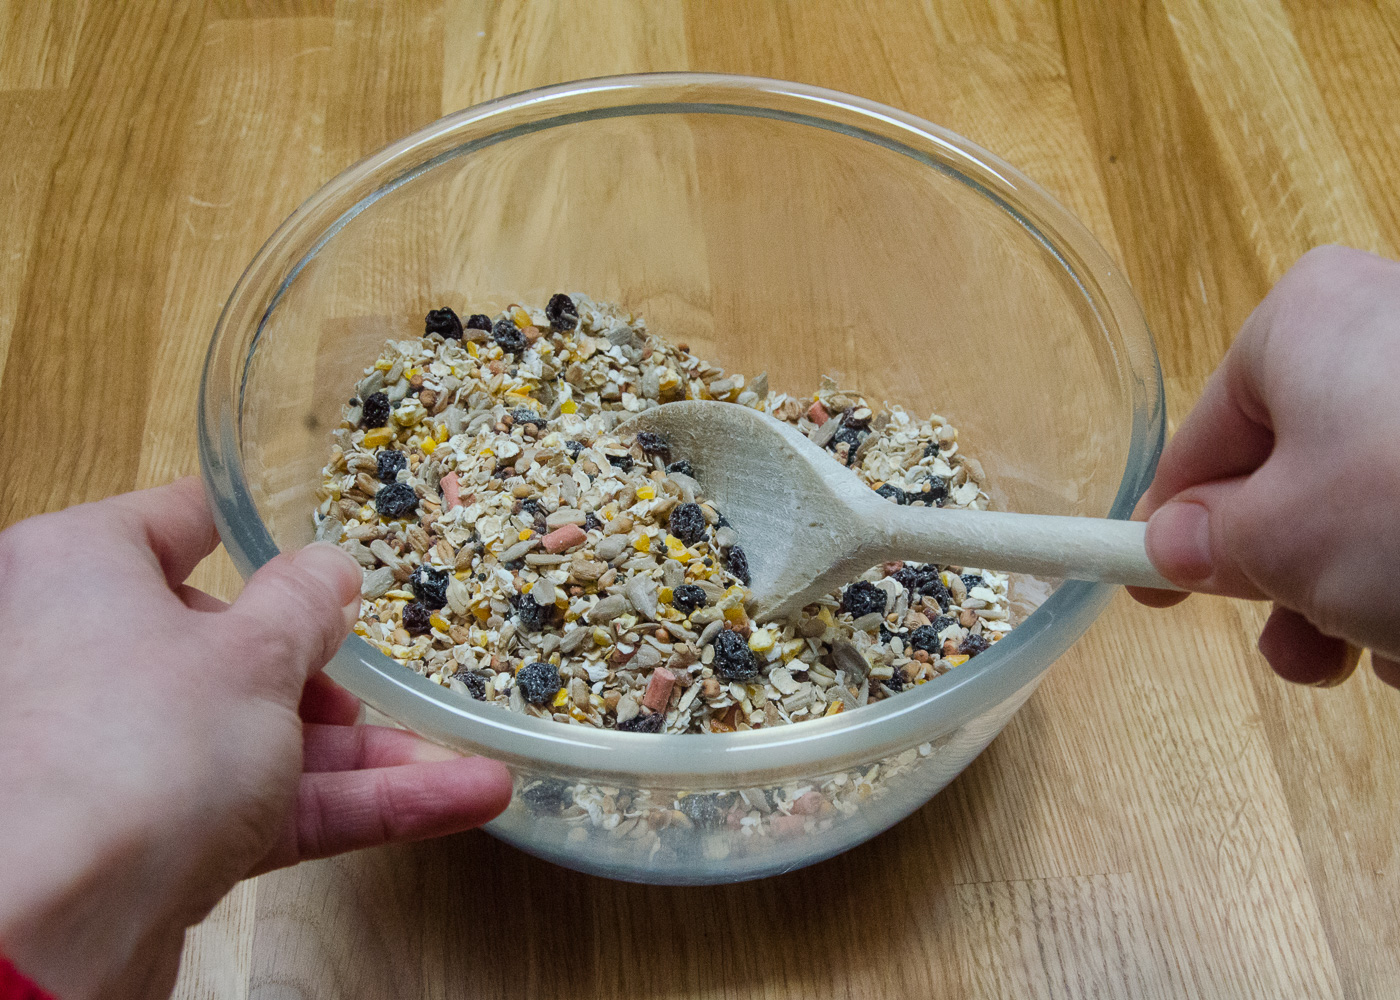 Combine bird food ingredients